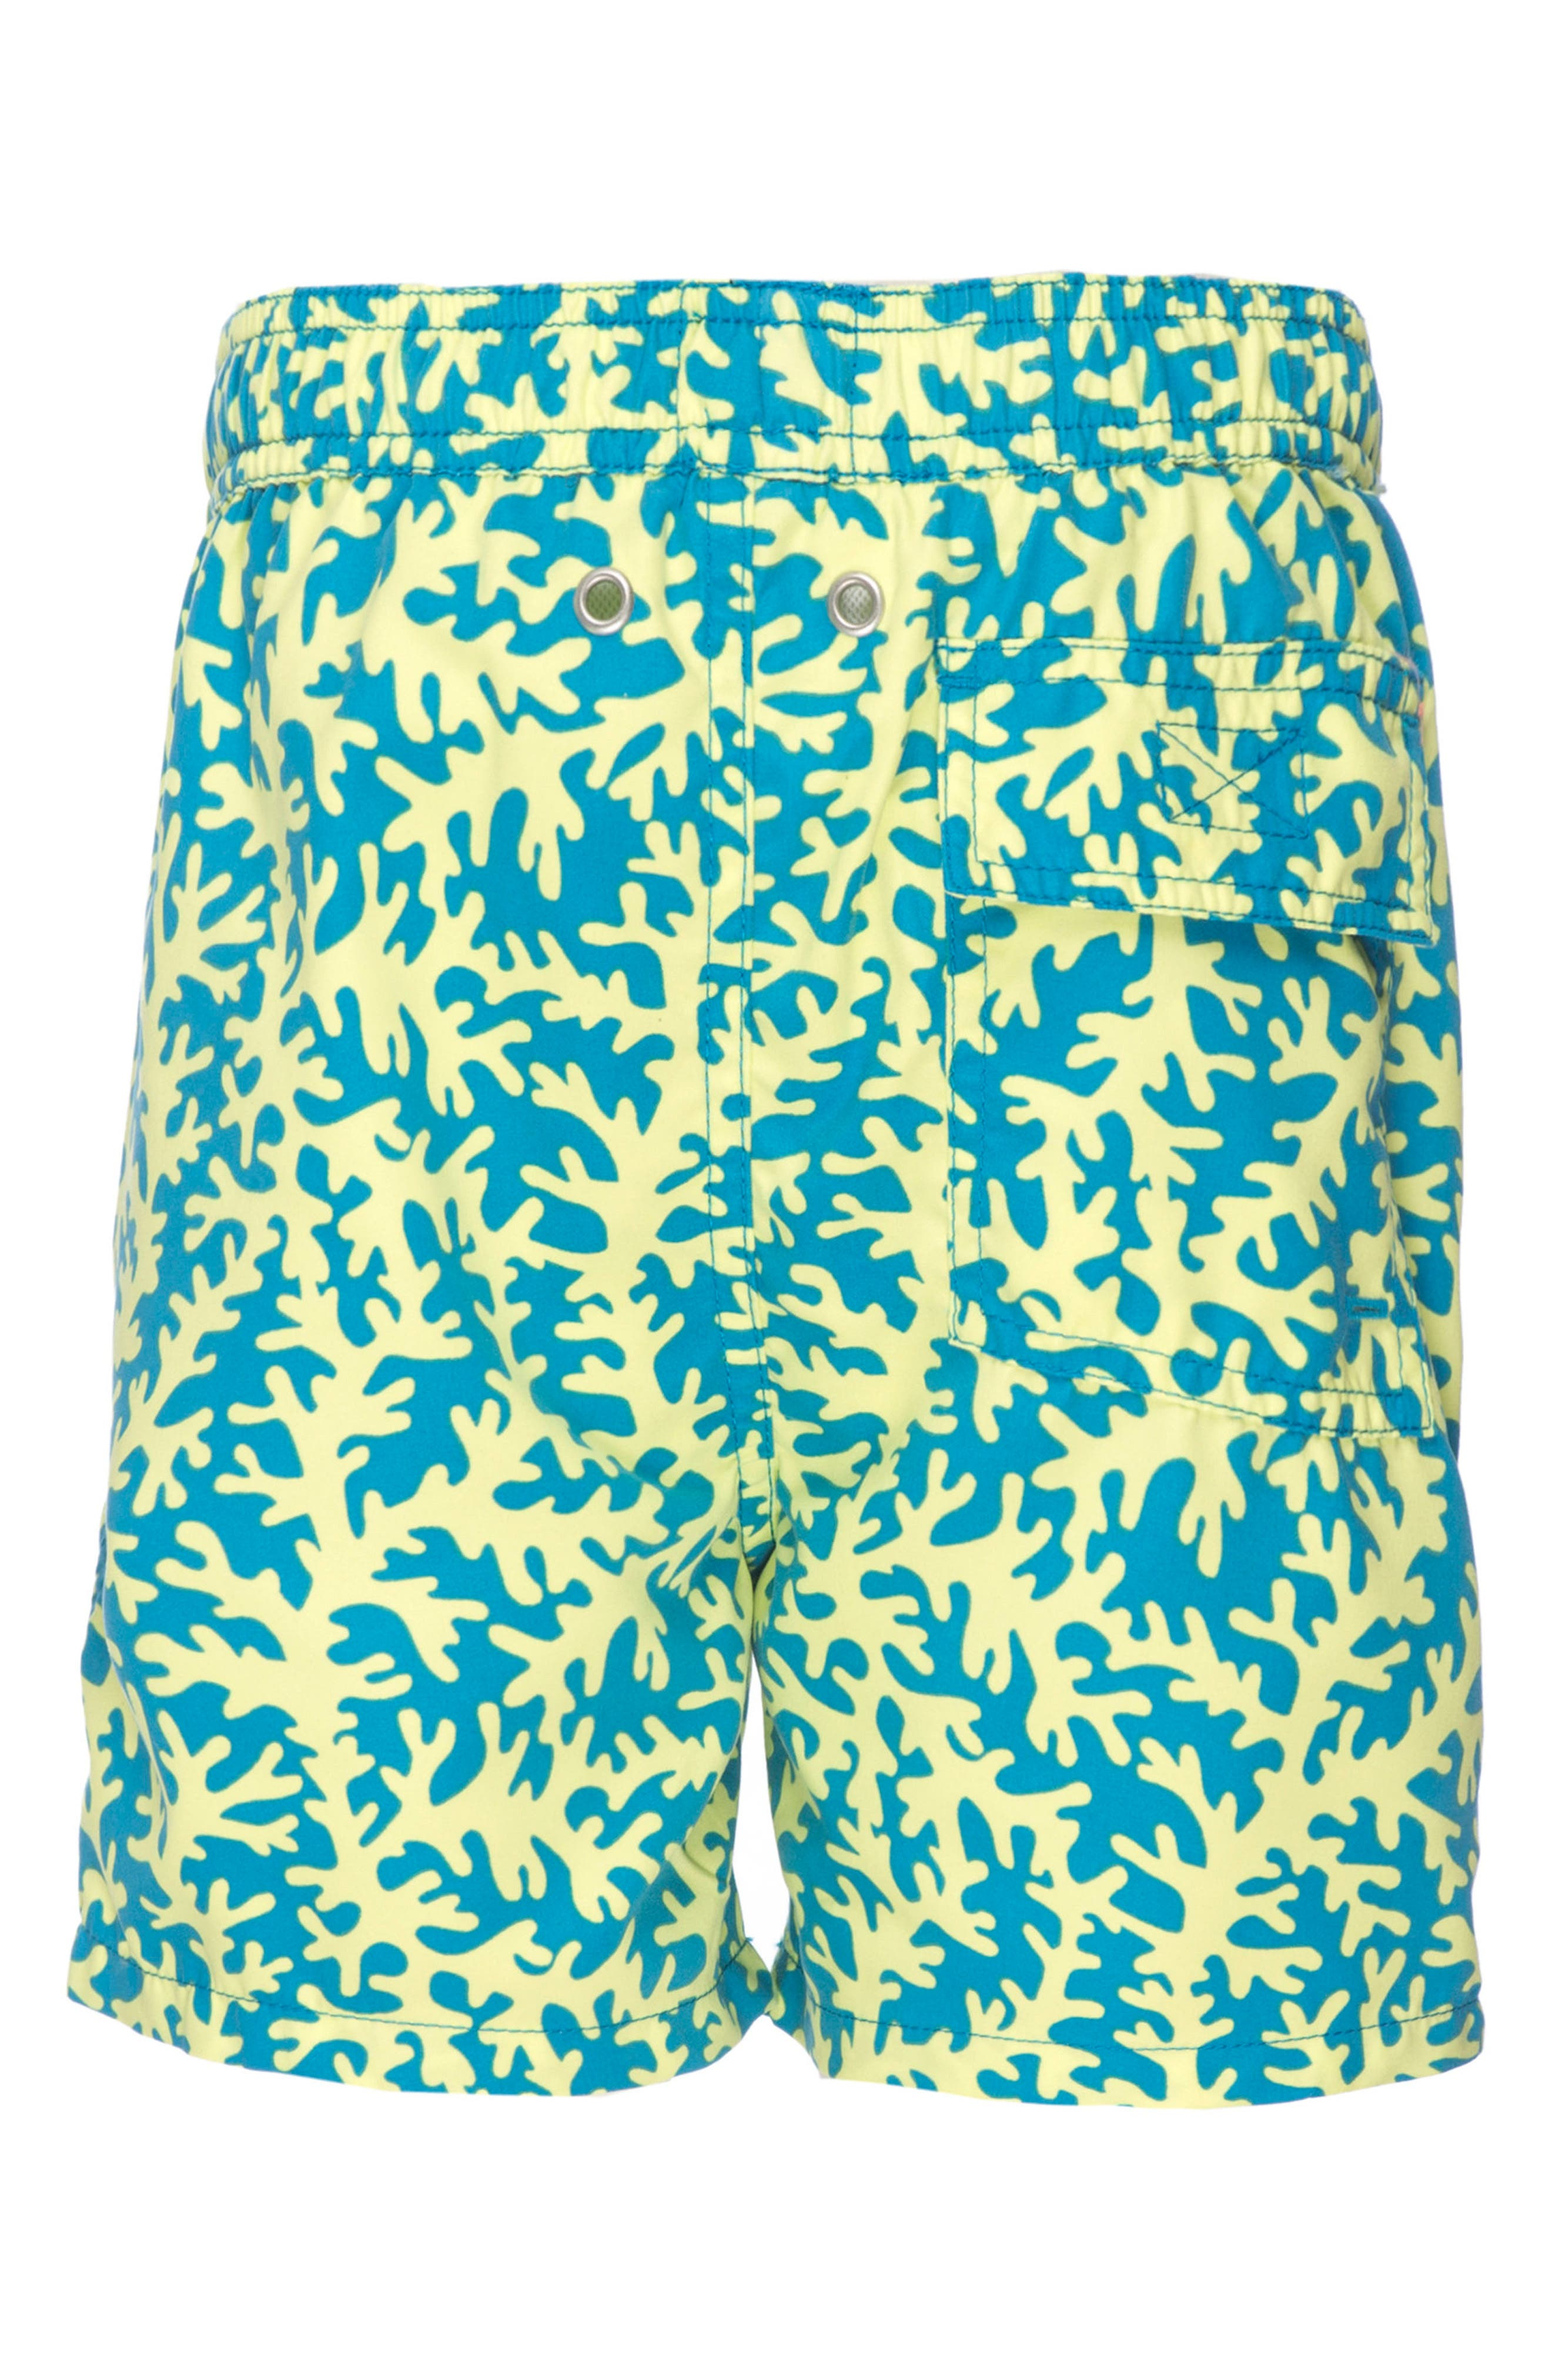 Coral Swim Trunks,                             Alternate thumbnail 4, color,                             Blue/ Lime